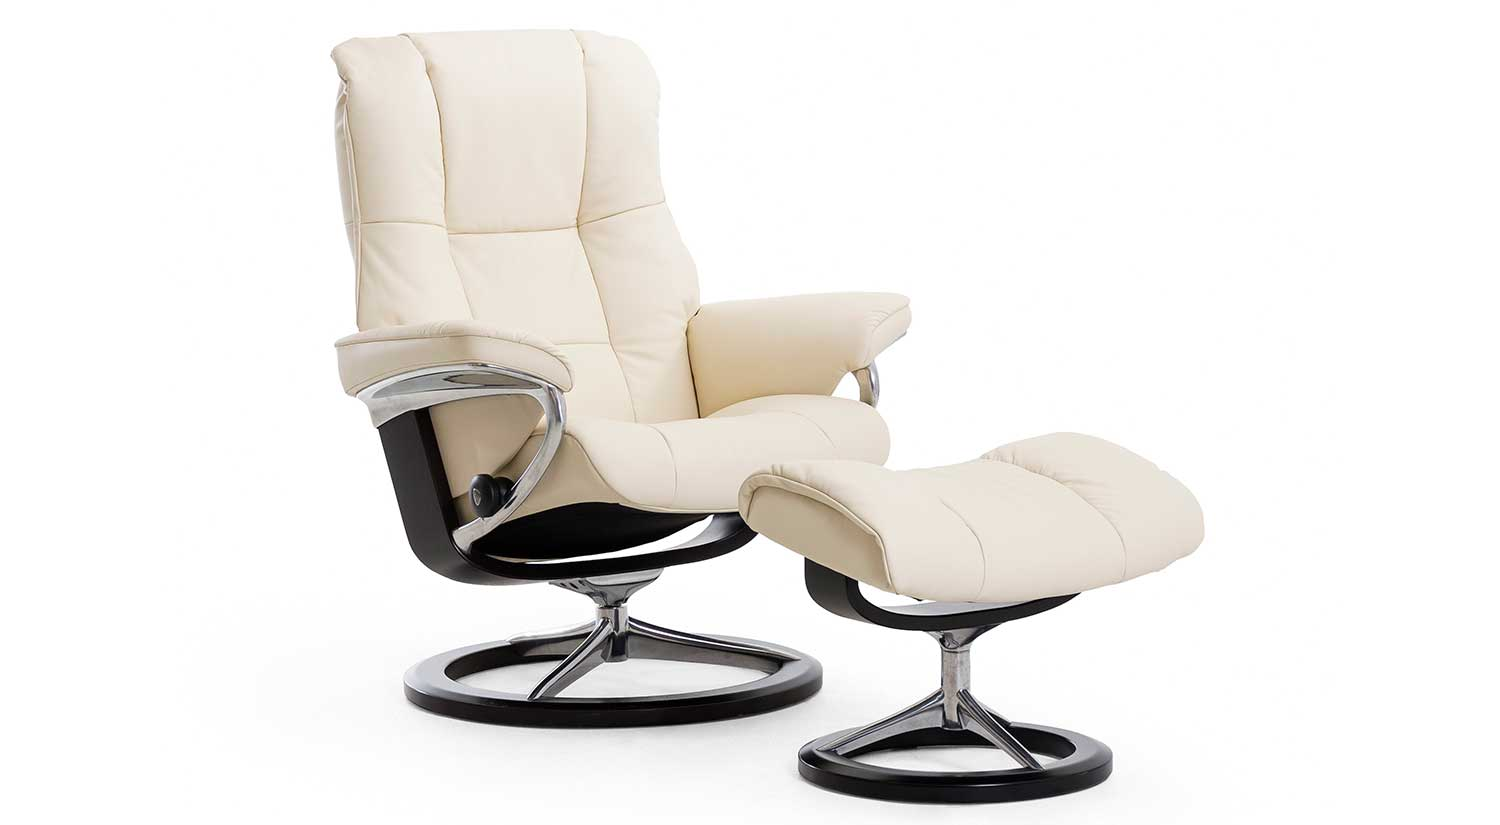 Mayfair Stressless Chair And Ottos Signature